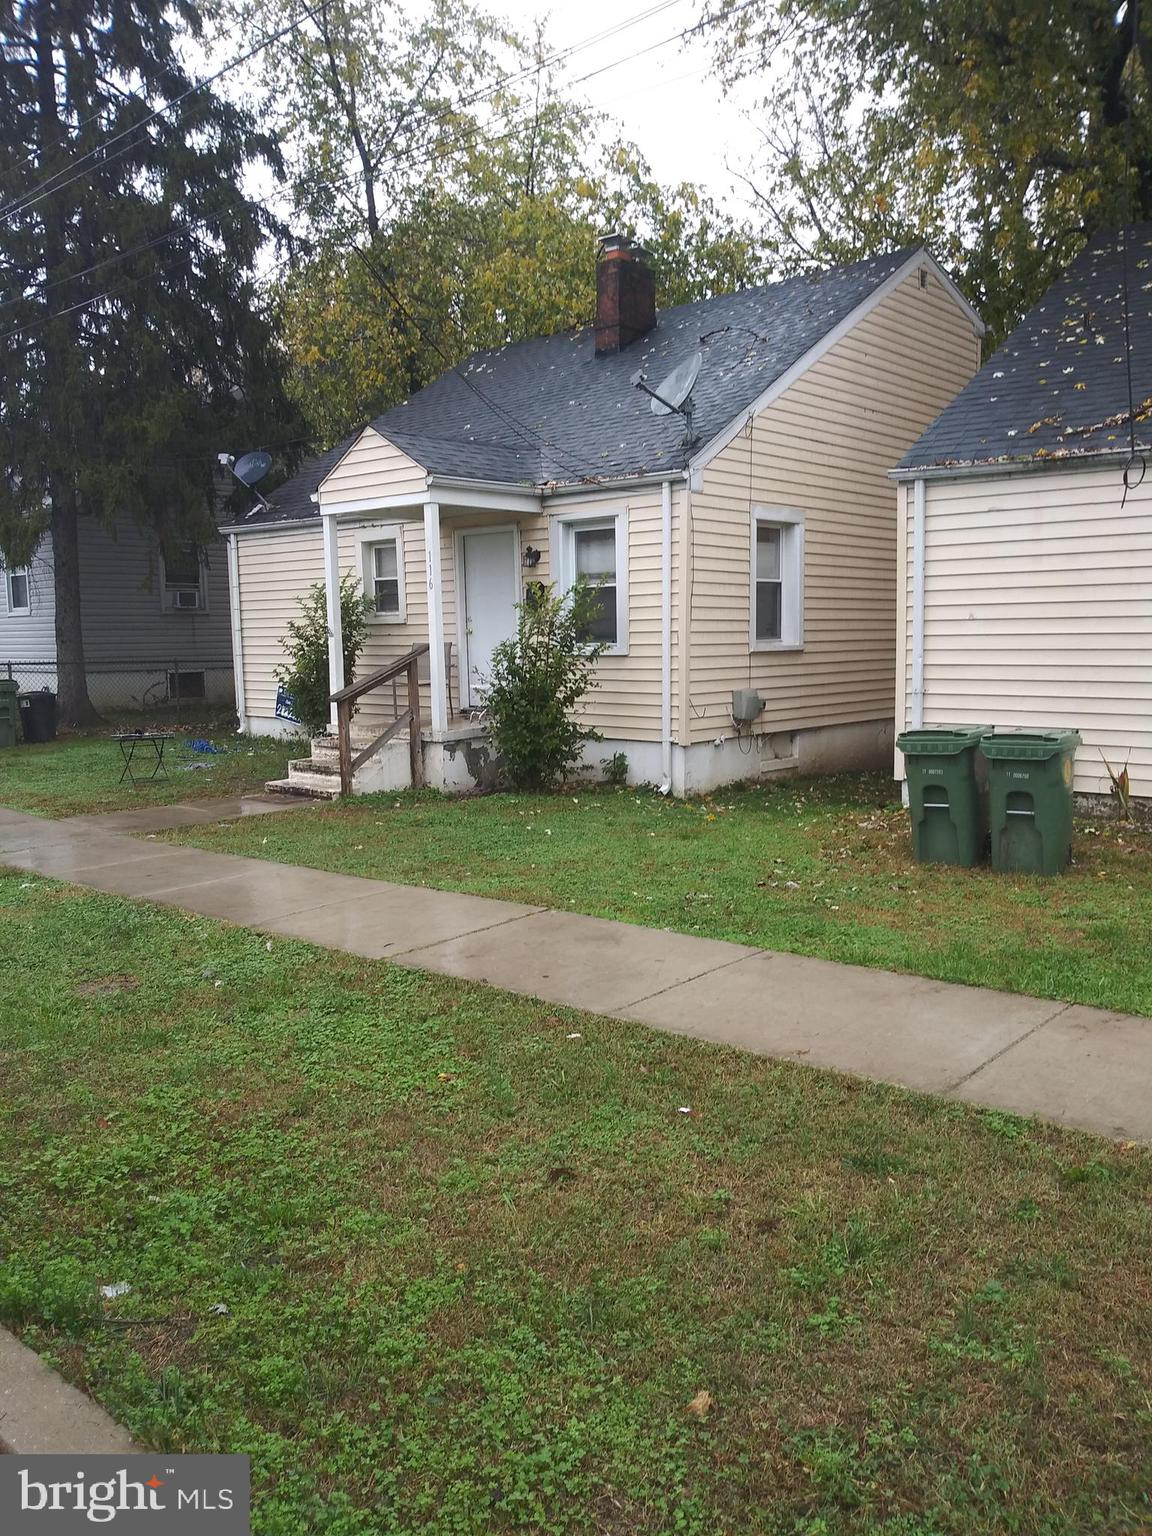 INVESTOR ALERT!!!    SINGLE FAMILY HOME IN AA COUNTY.    TENANT OCCUPIED AT $1200 PER MONTH OR MAKE UPGRADES AND RESELL.    LARGE REAR YARD, CENTRAL AIR.  PLENTY OF ROOM TO EXPAND.     24 HOUR NOTICE TO SHOW.   CALL LISTING AGENT